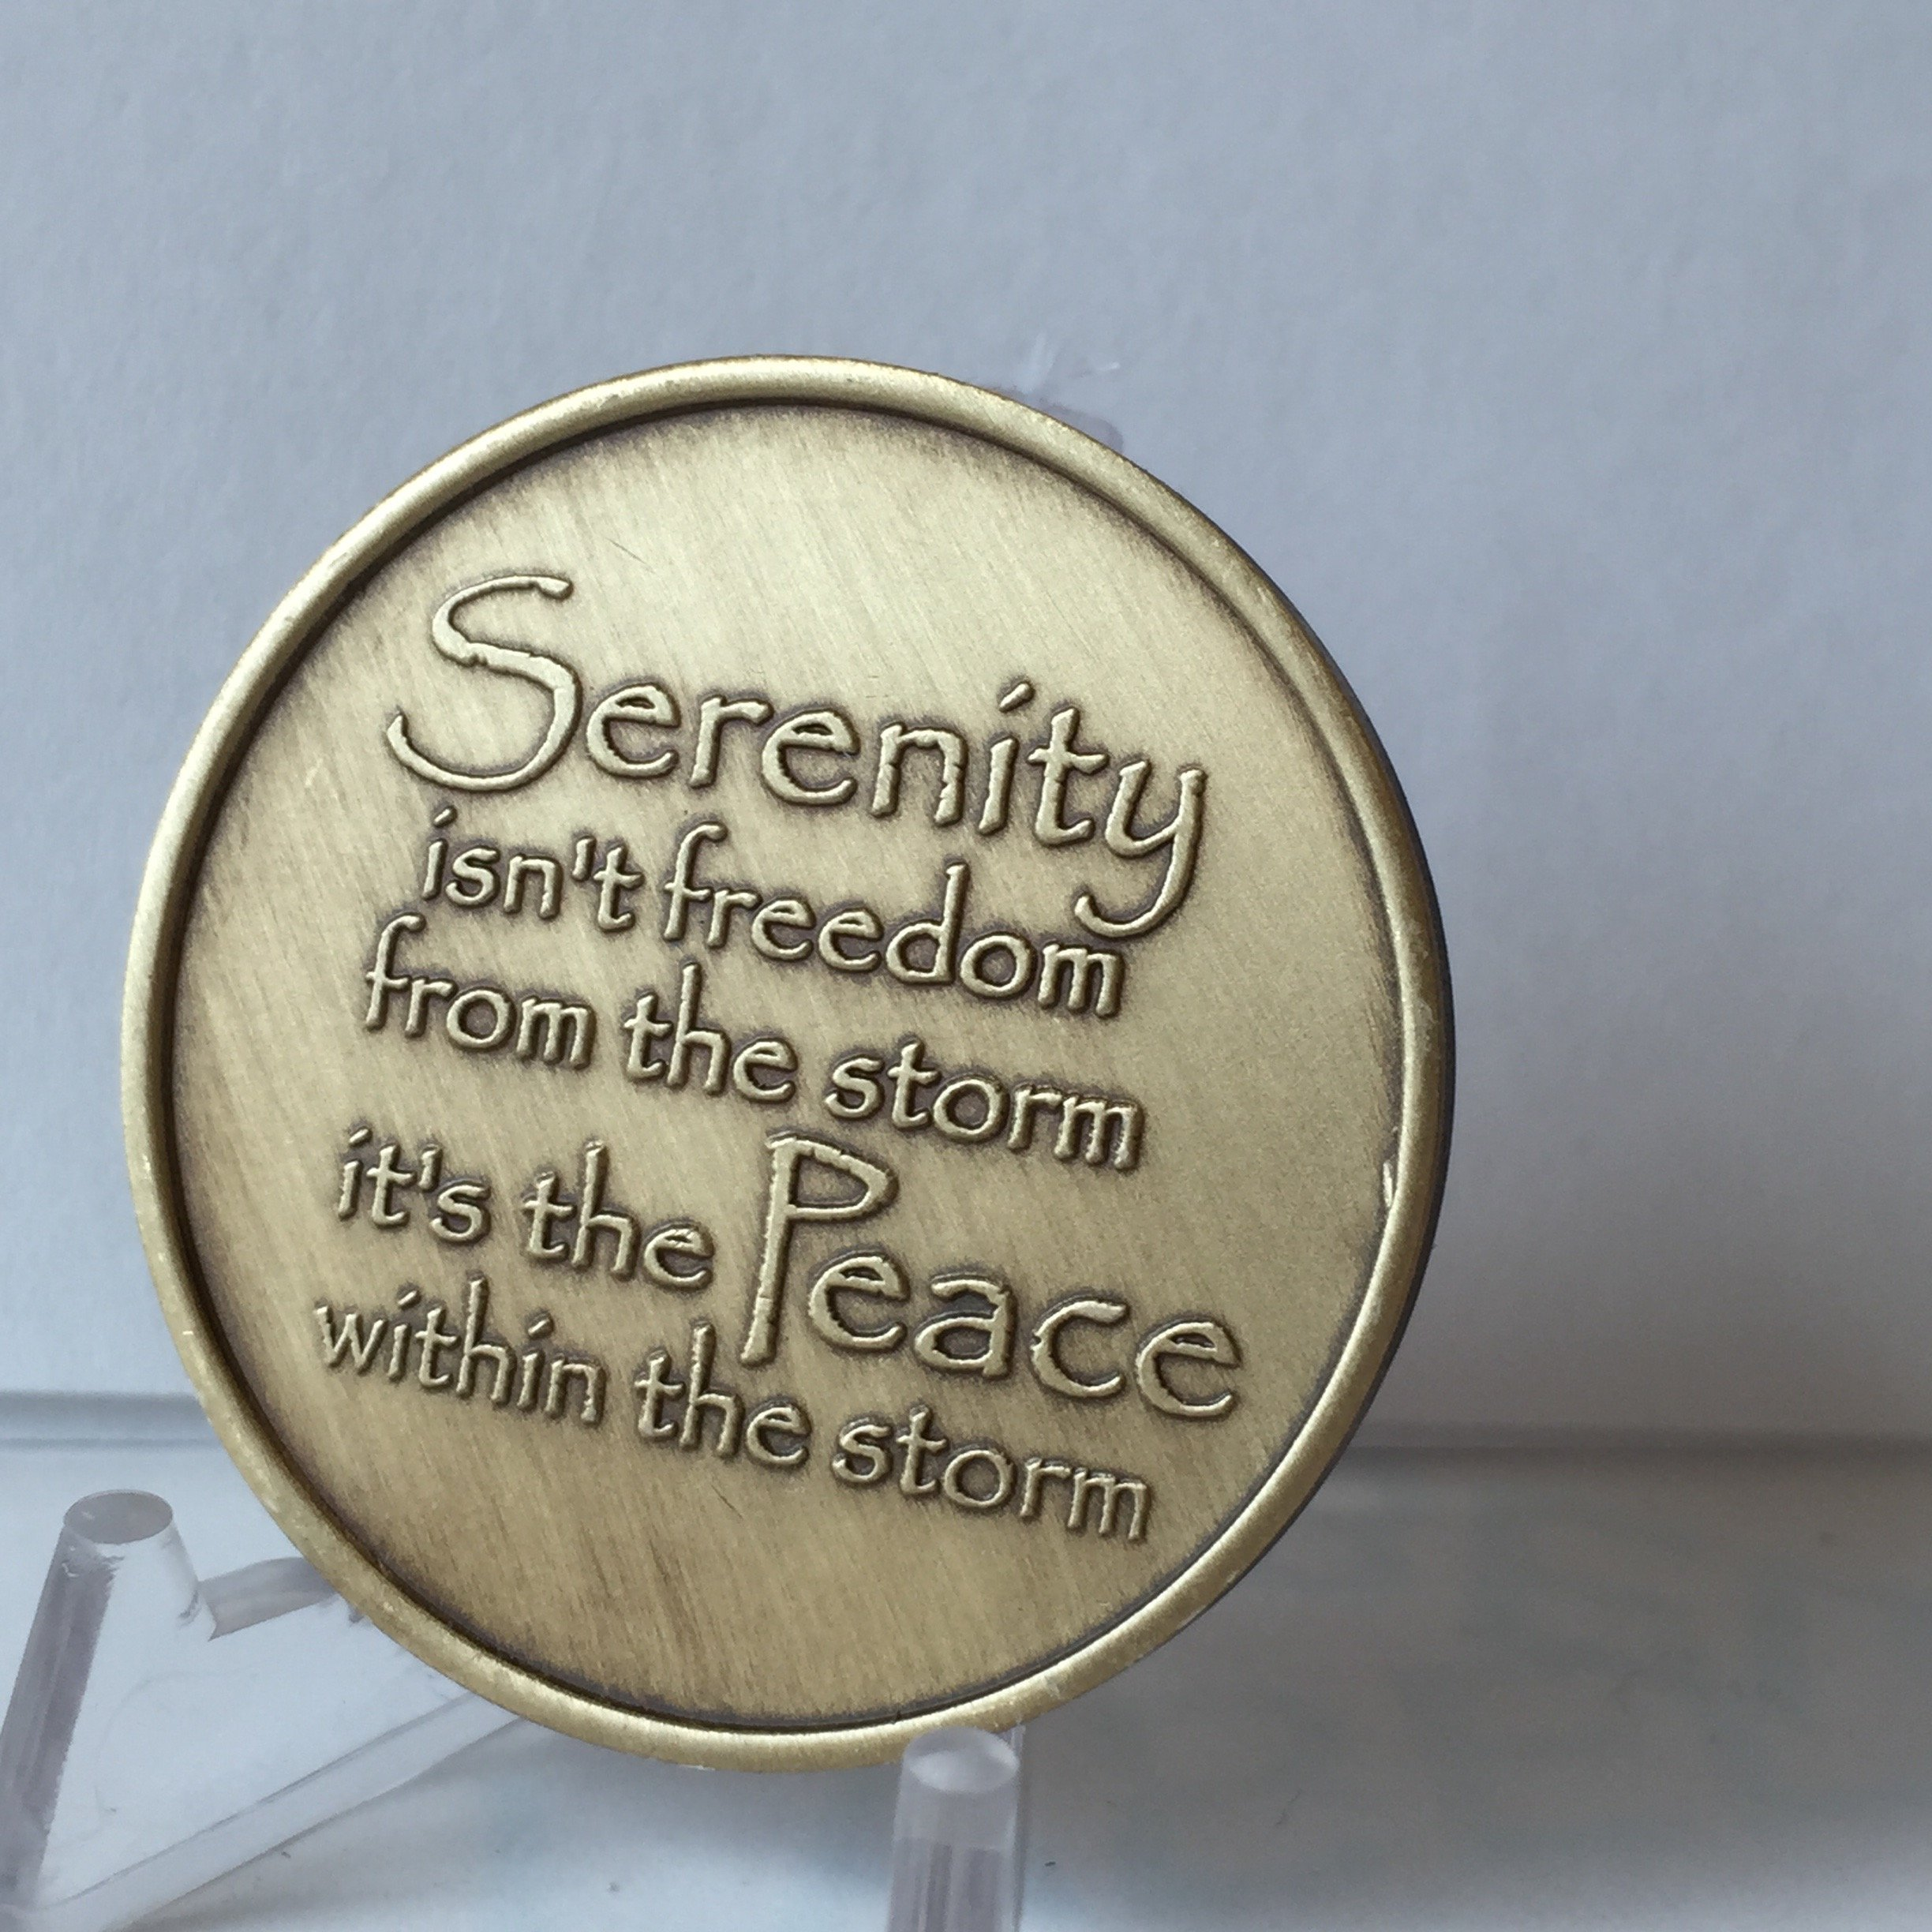 Bulk Lot of 25 Serenity Lake Peace Within The Storm Bronze Medallions Chip Wholesale Set by RecoveryChip (Image #8)